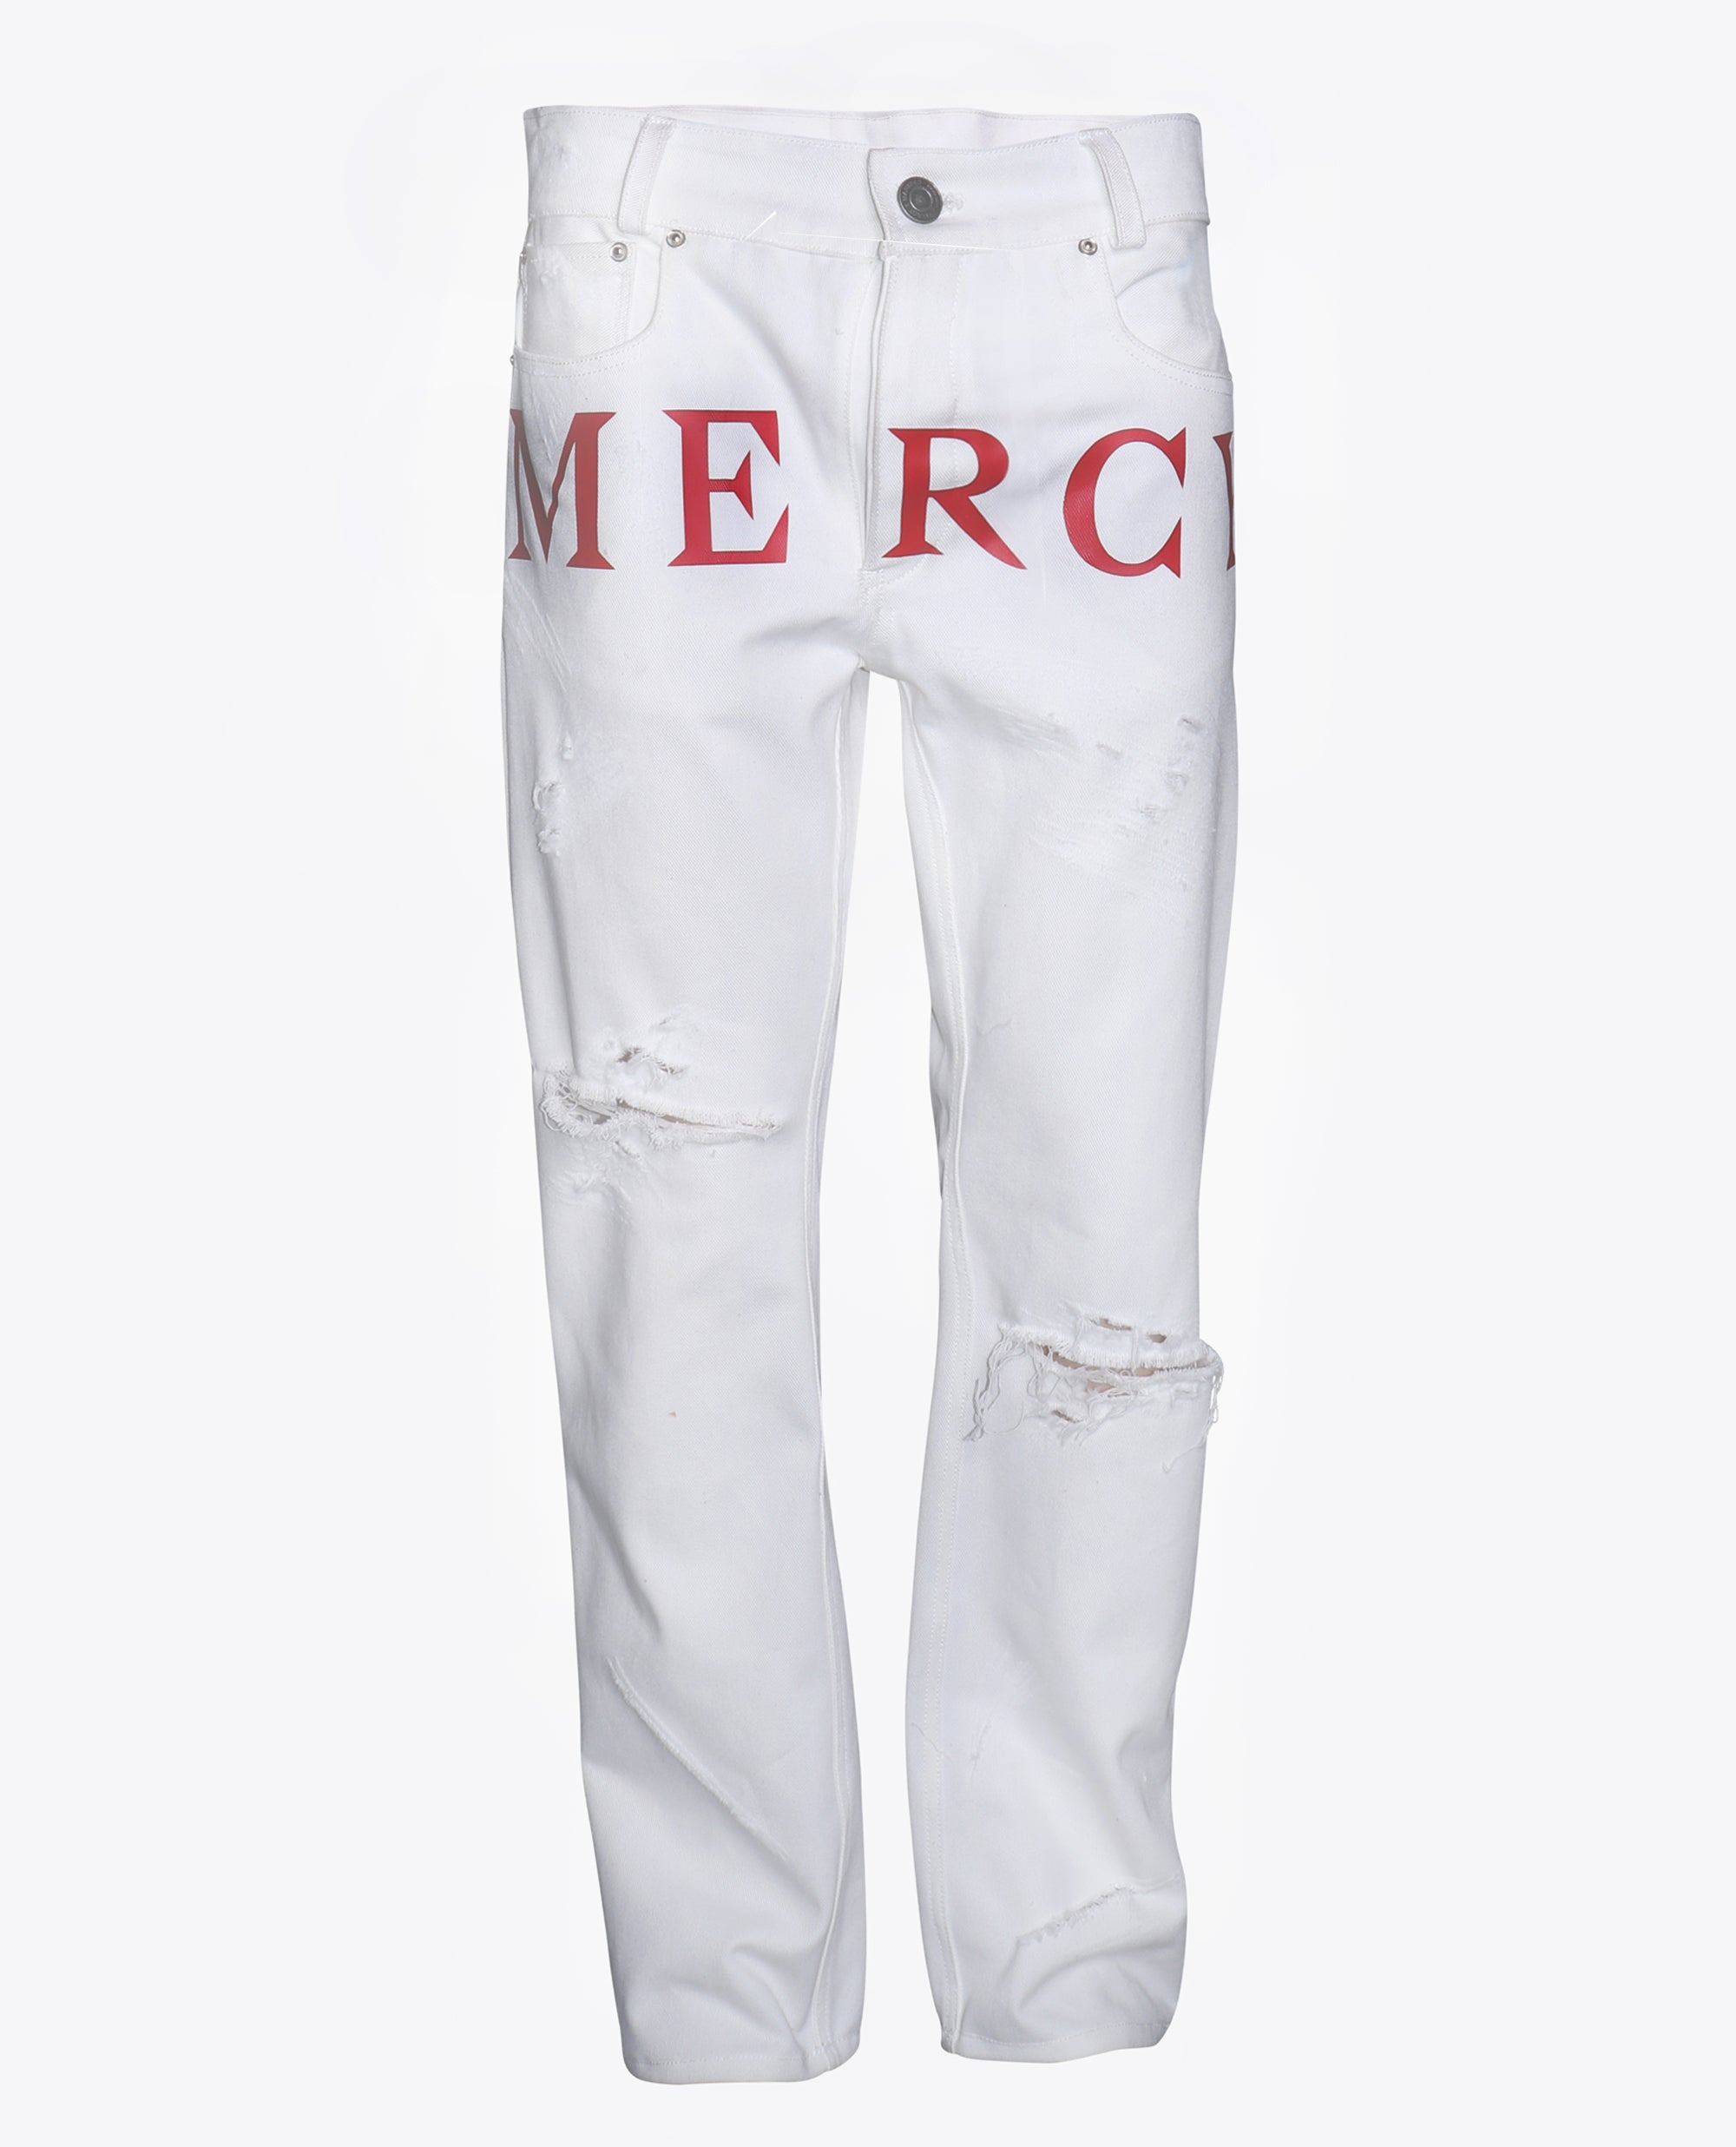 Mercy Vinyl Denim (White)